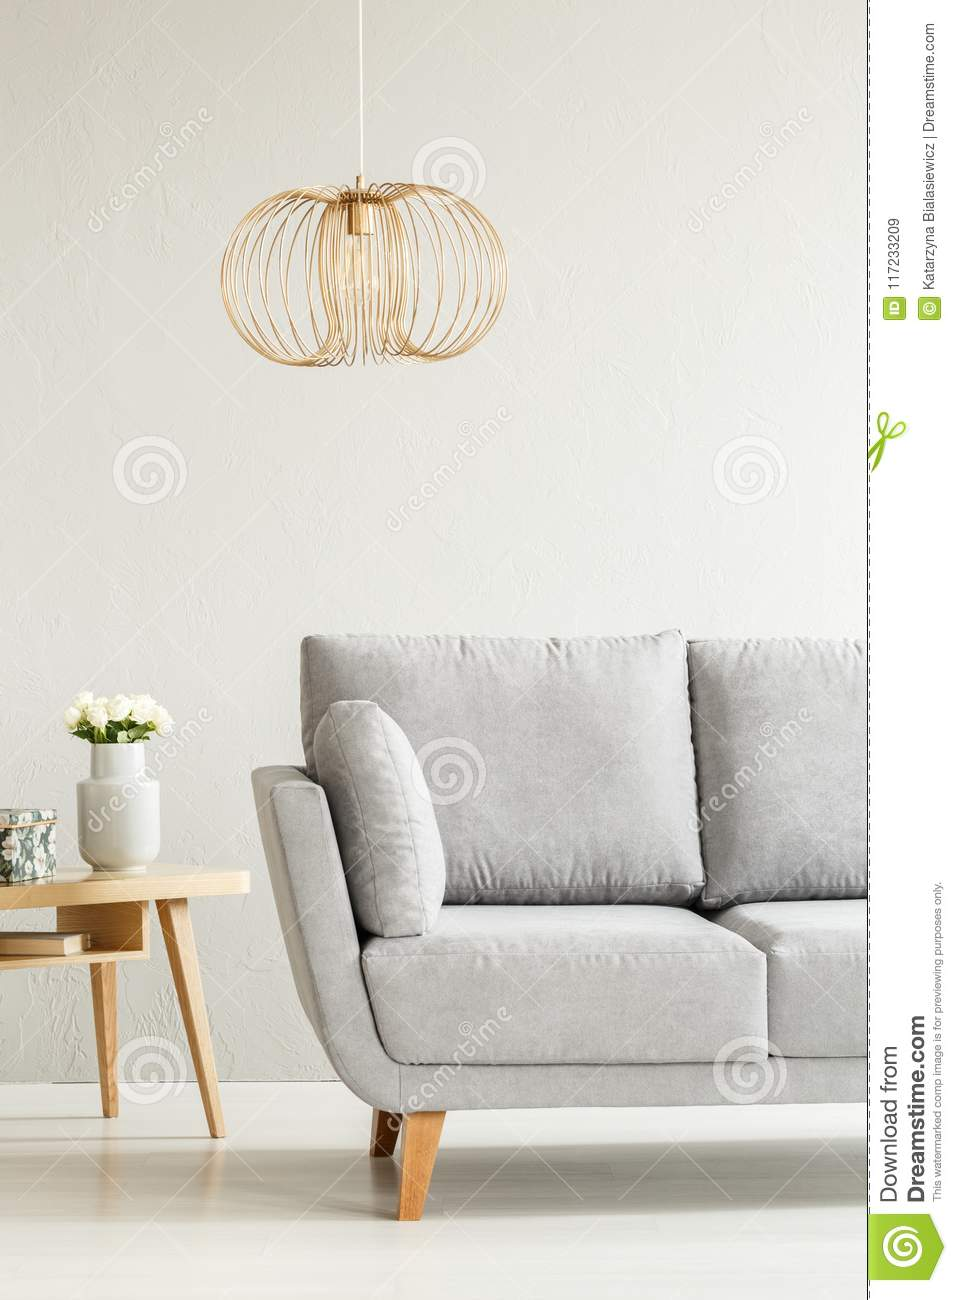 Grey and gold living room stock image. Image of settee - 117233209